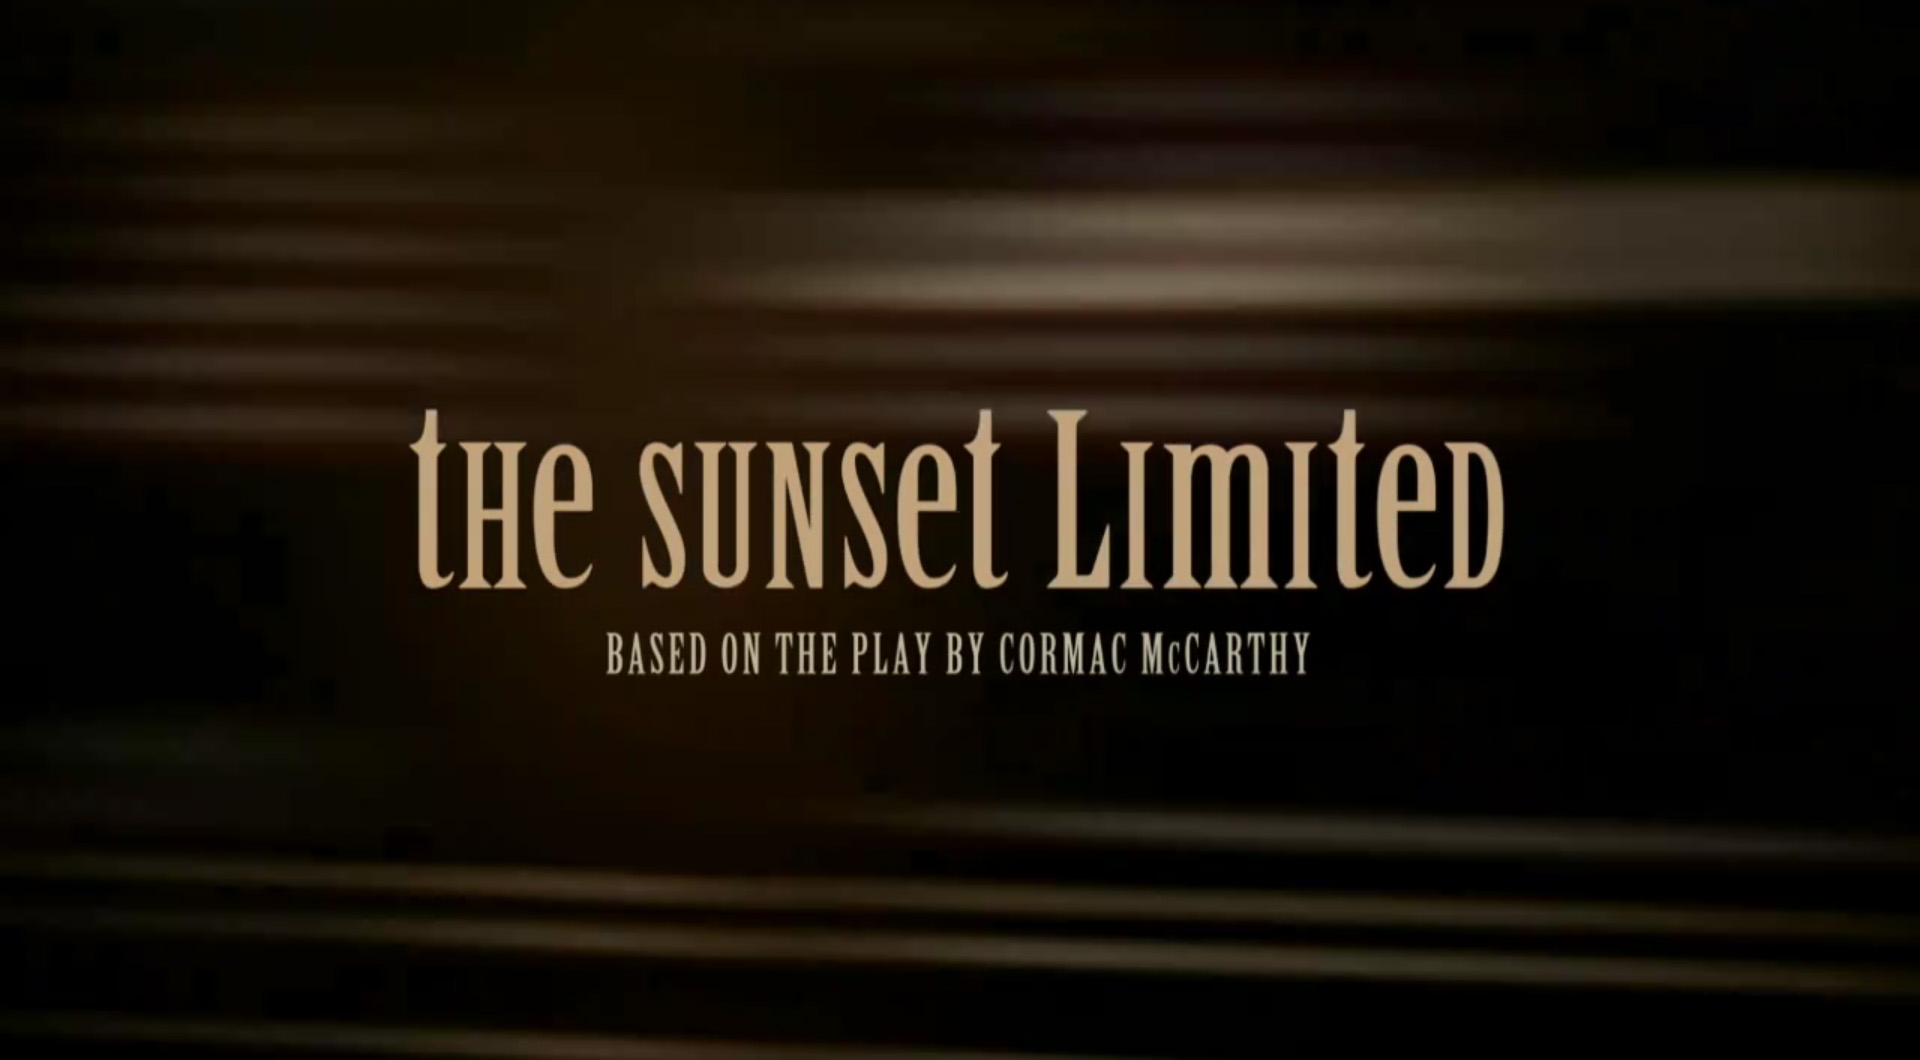 sunset limited The sunset limited is a 2011 television film based on the play written by cormac mccarthy the film stars tommy lee jones and samuel l jackson it was the duo's.